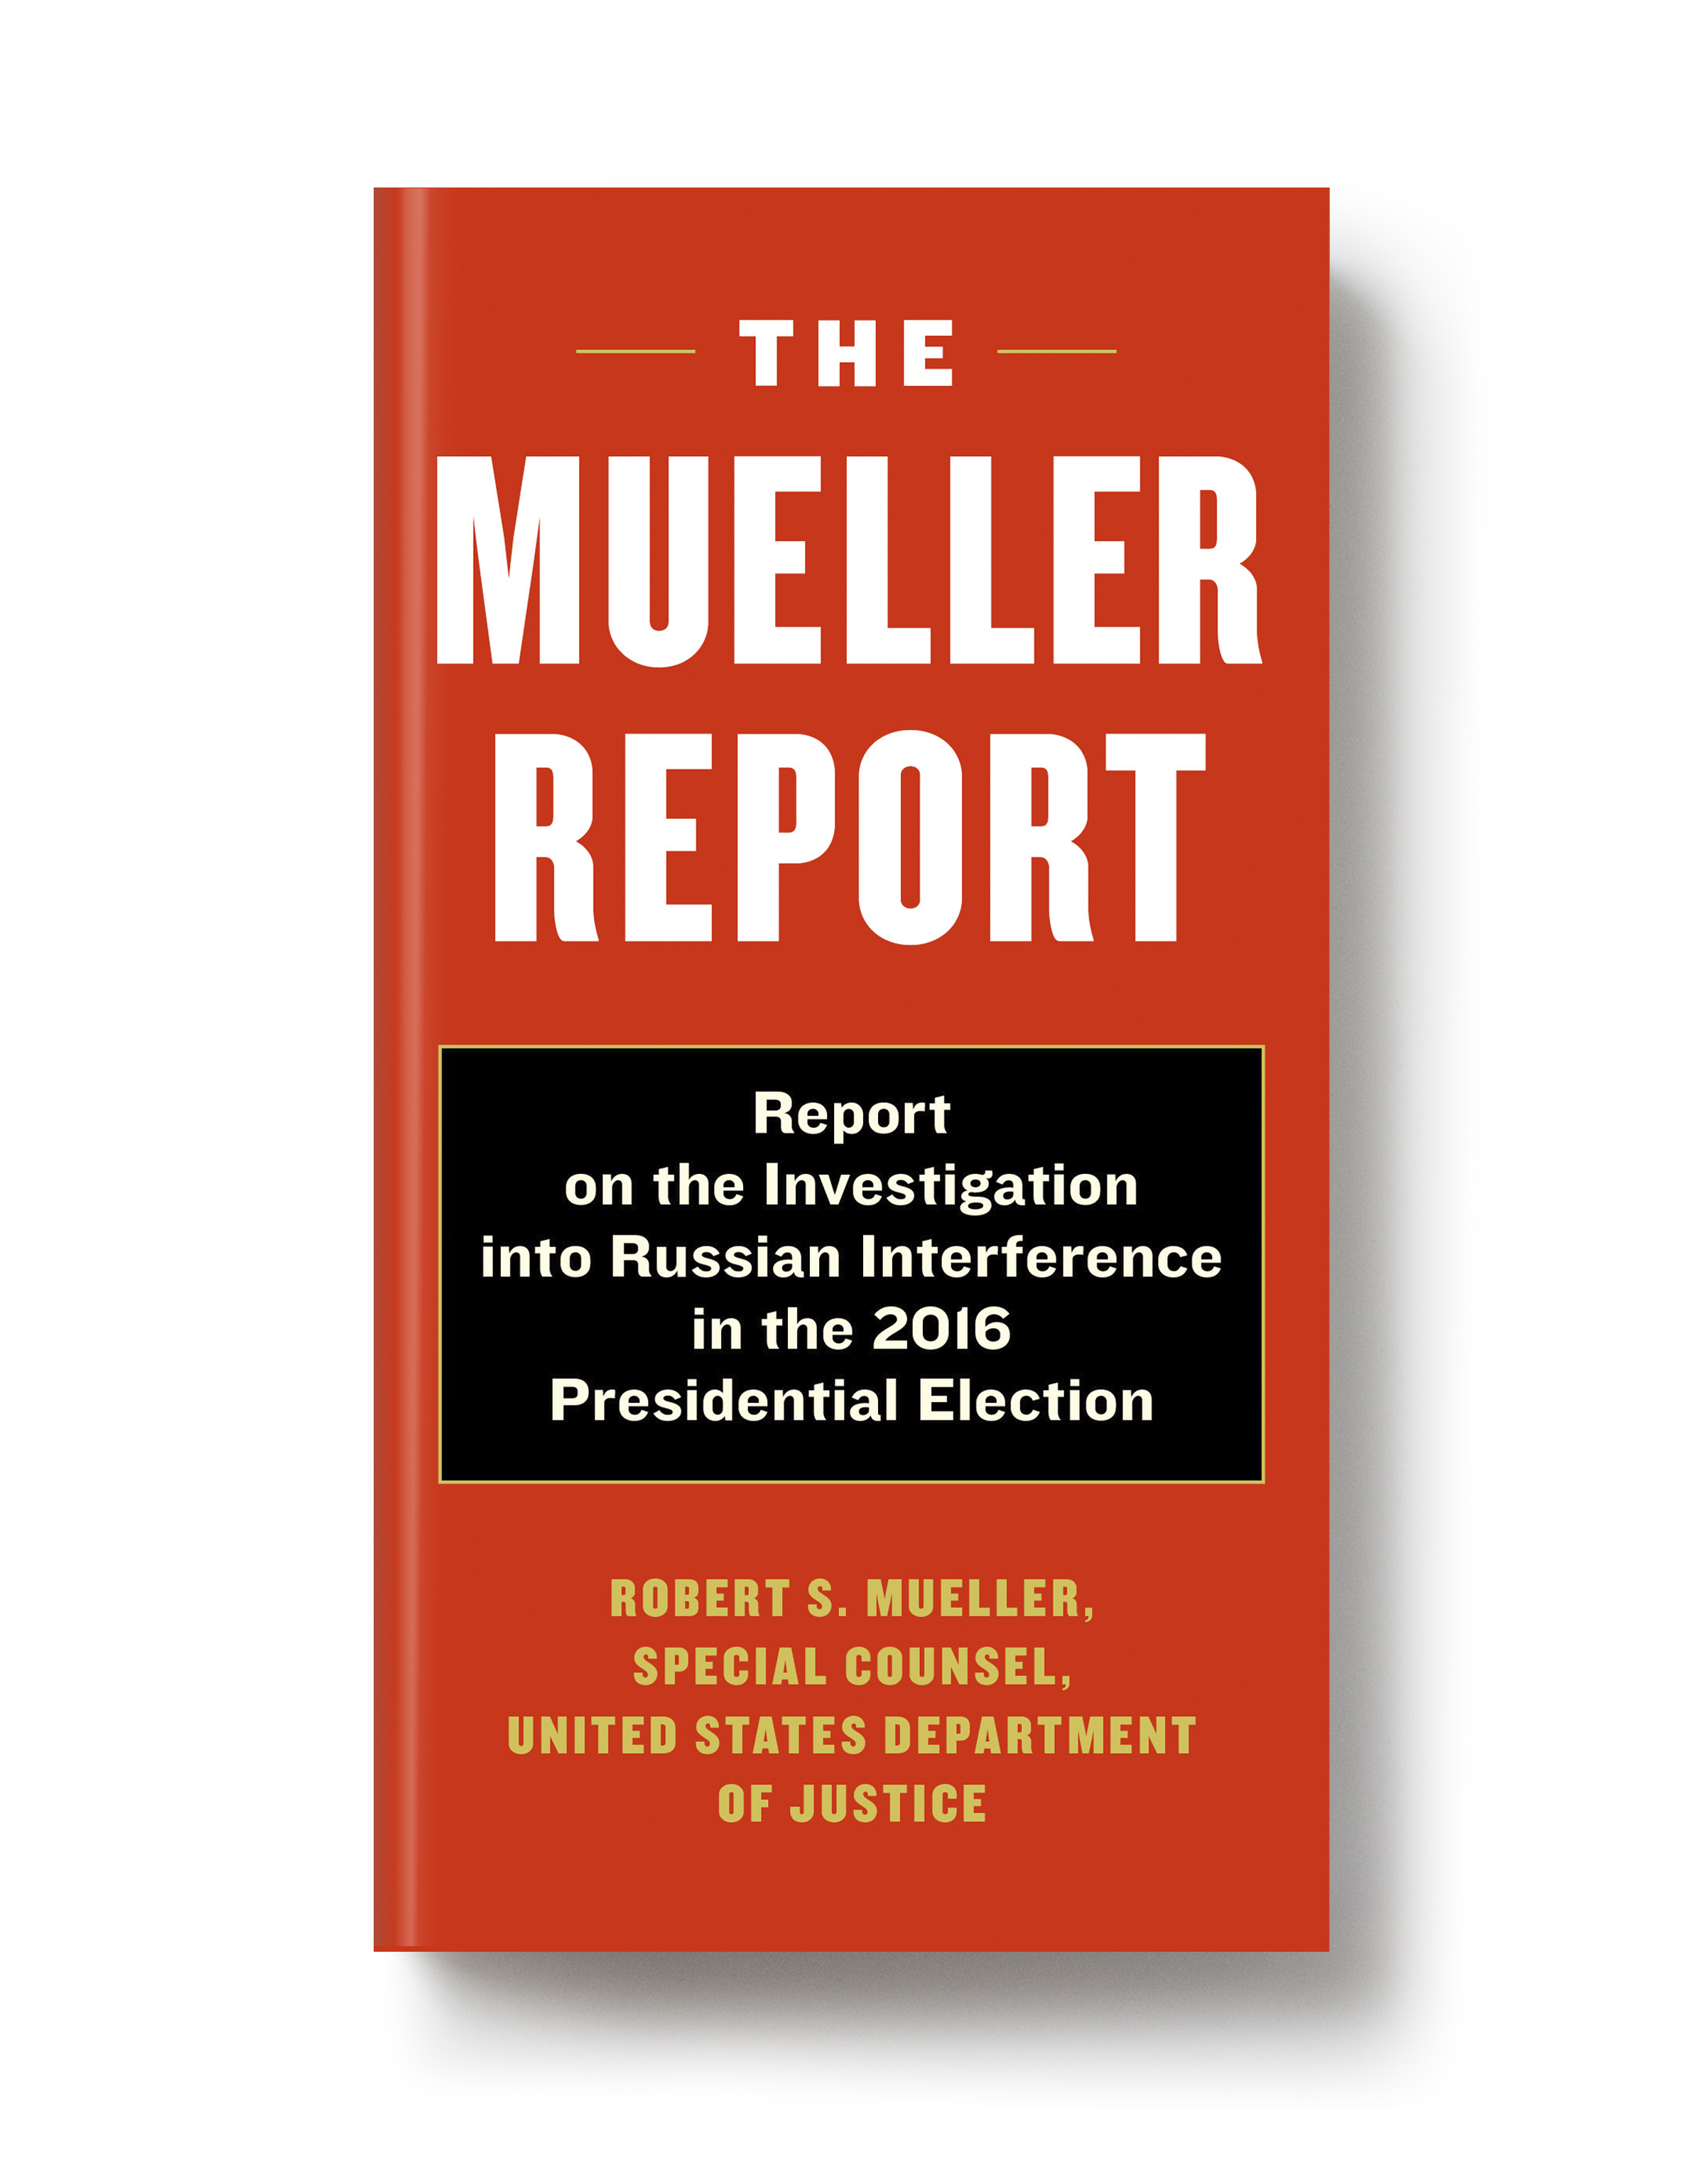 Mueller Report reading groups are popping up everywhere